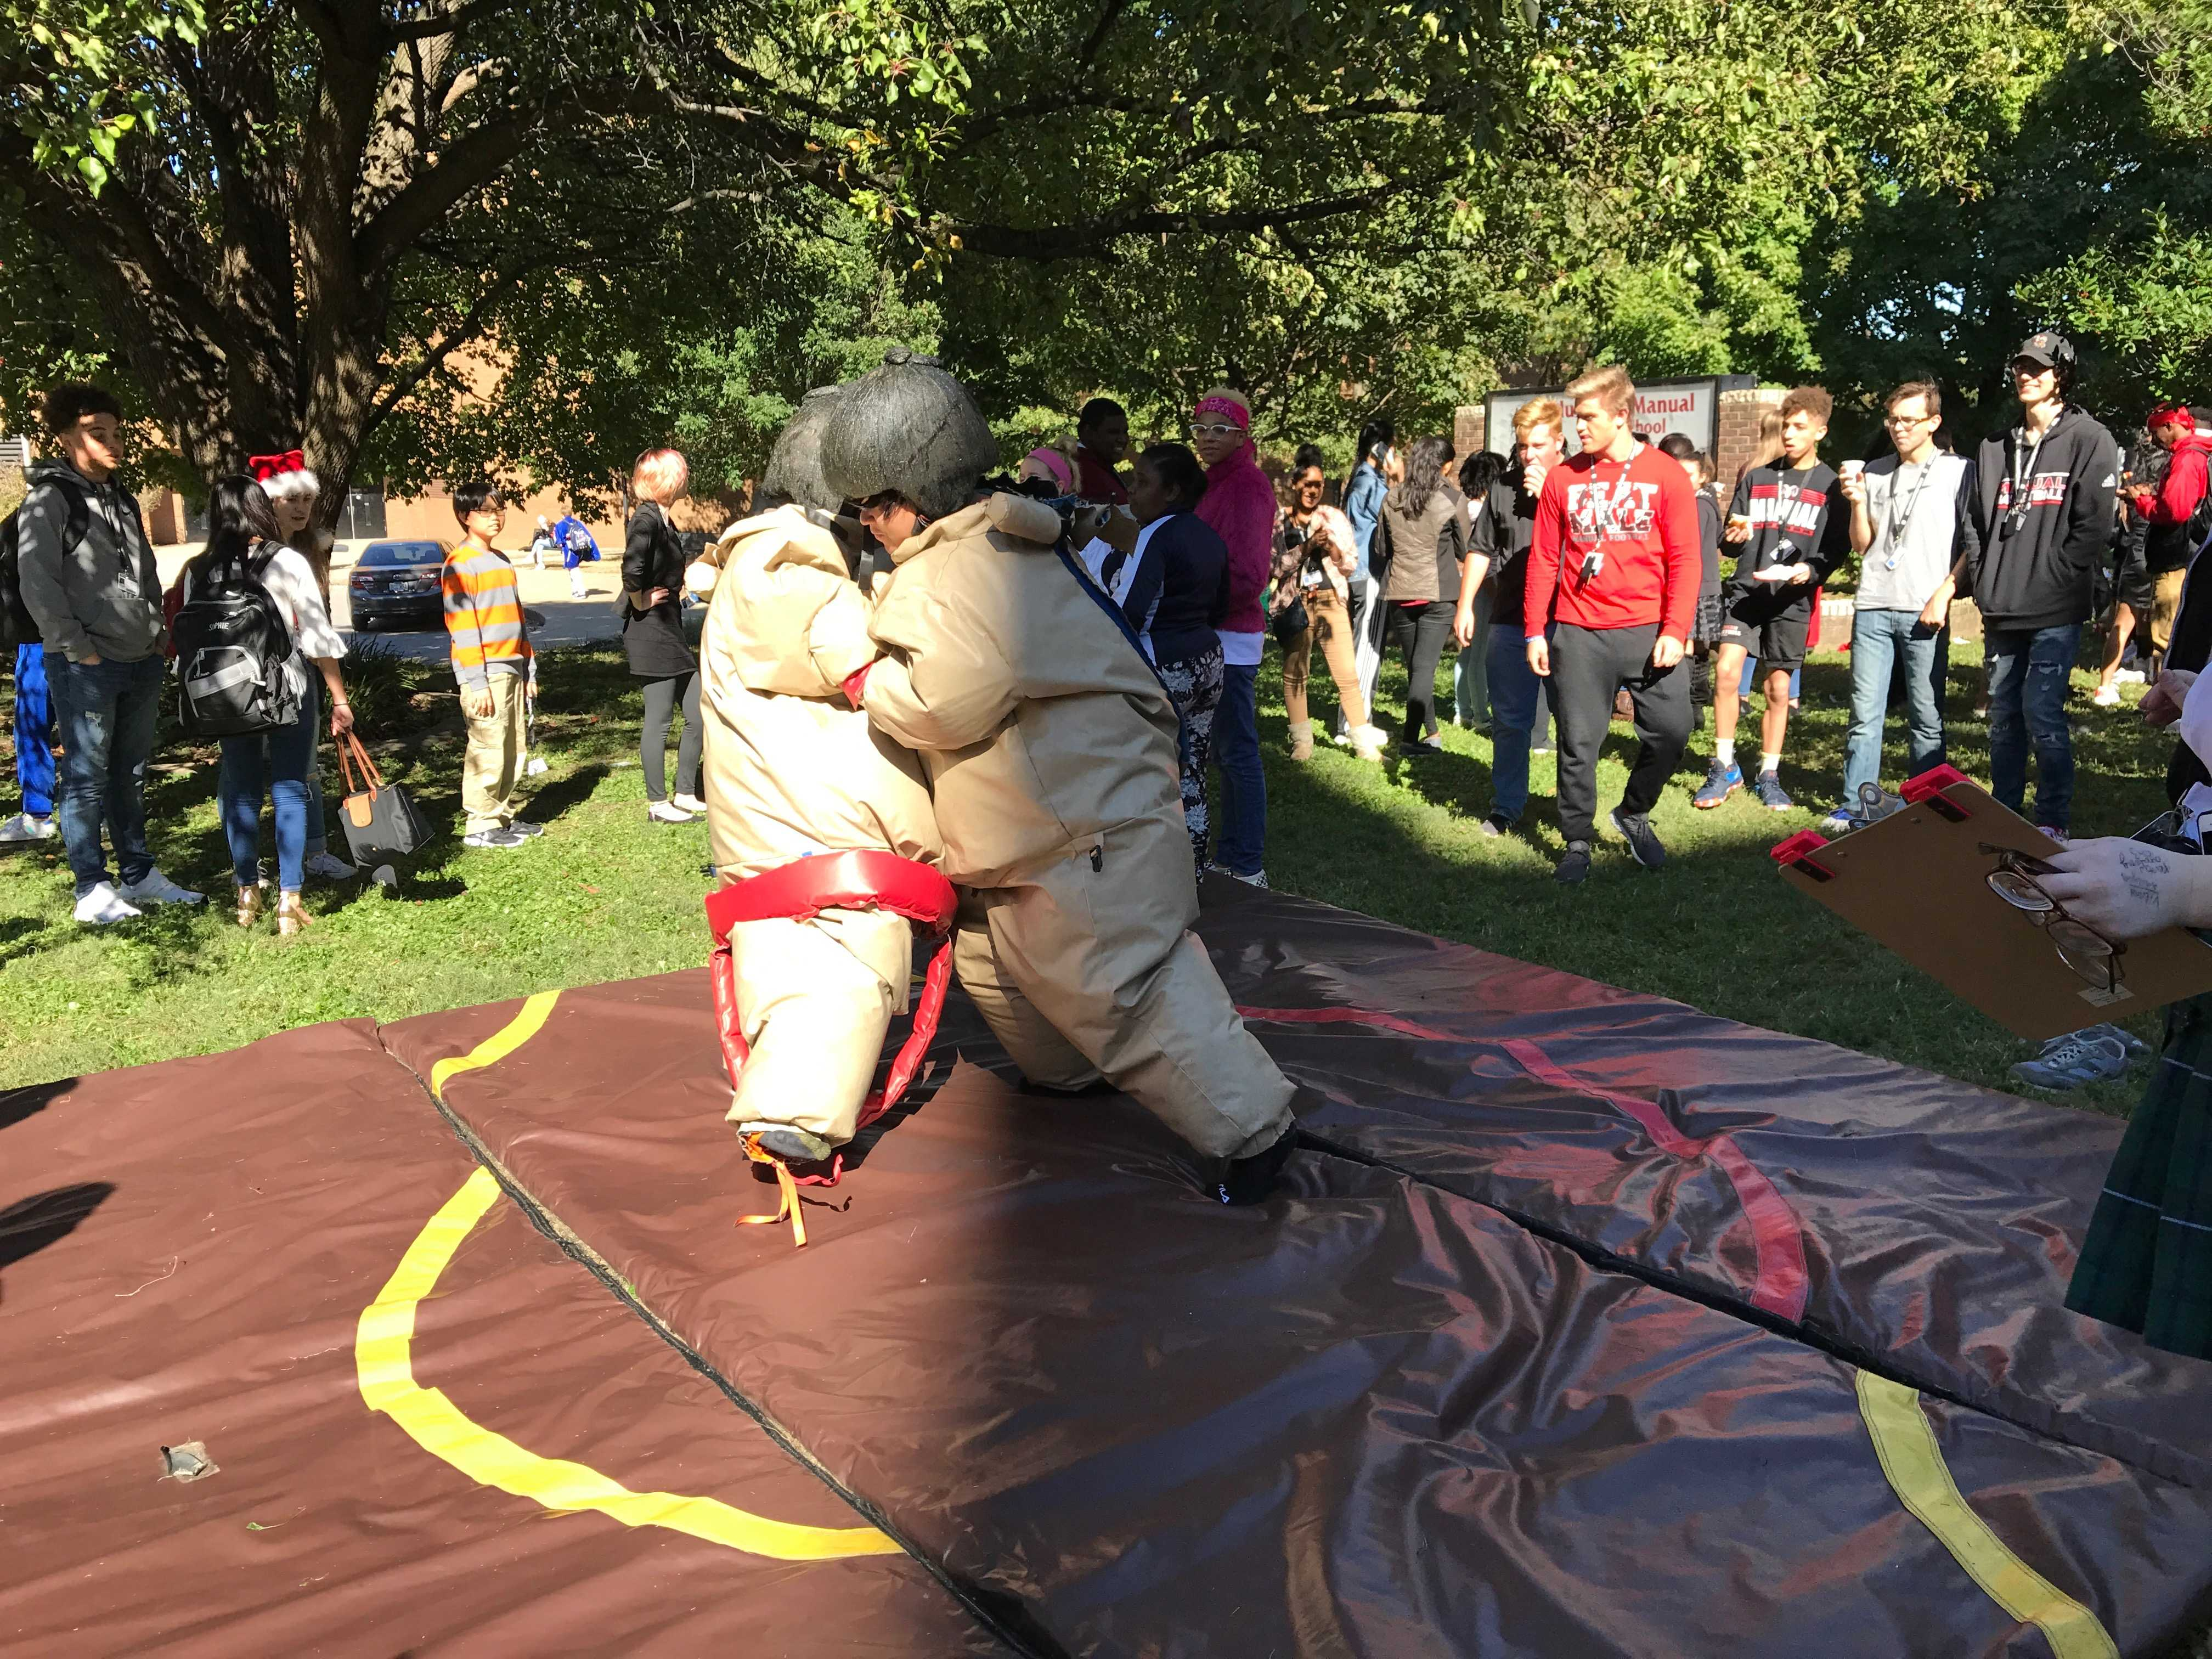 R/W Week 2018: Manual students sumo wrestle and more at the carnival